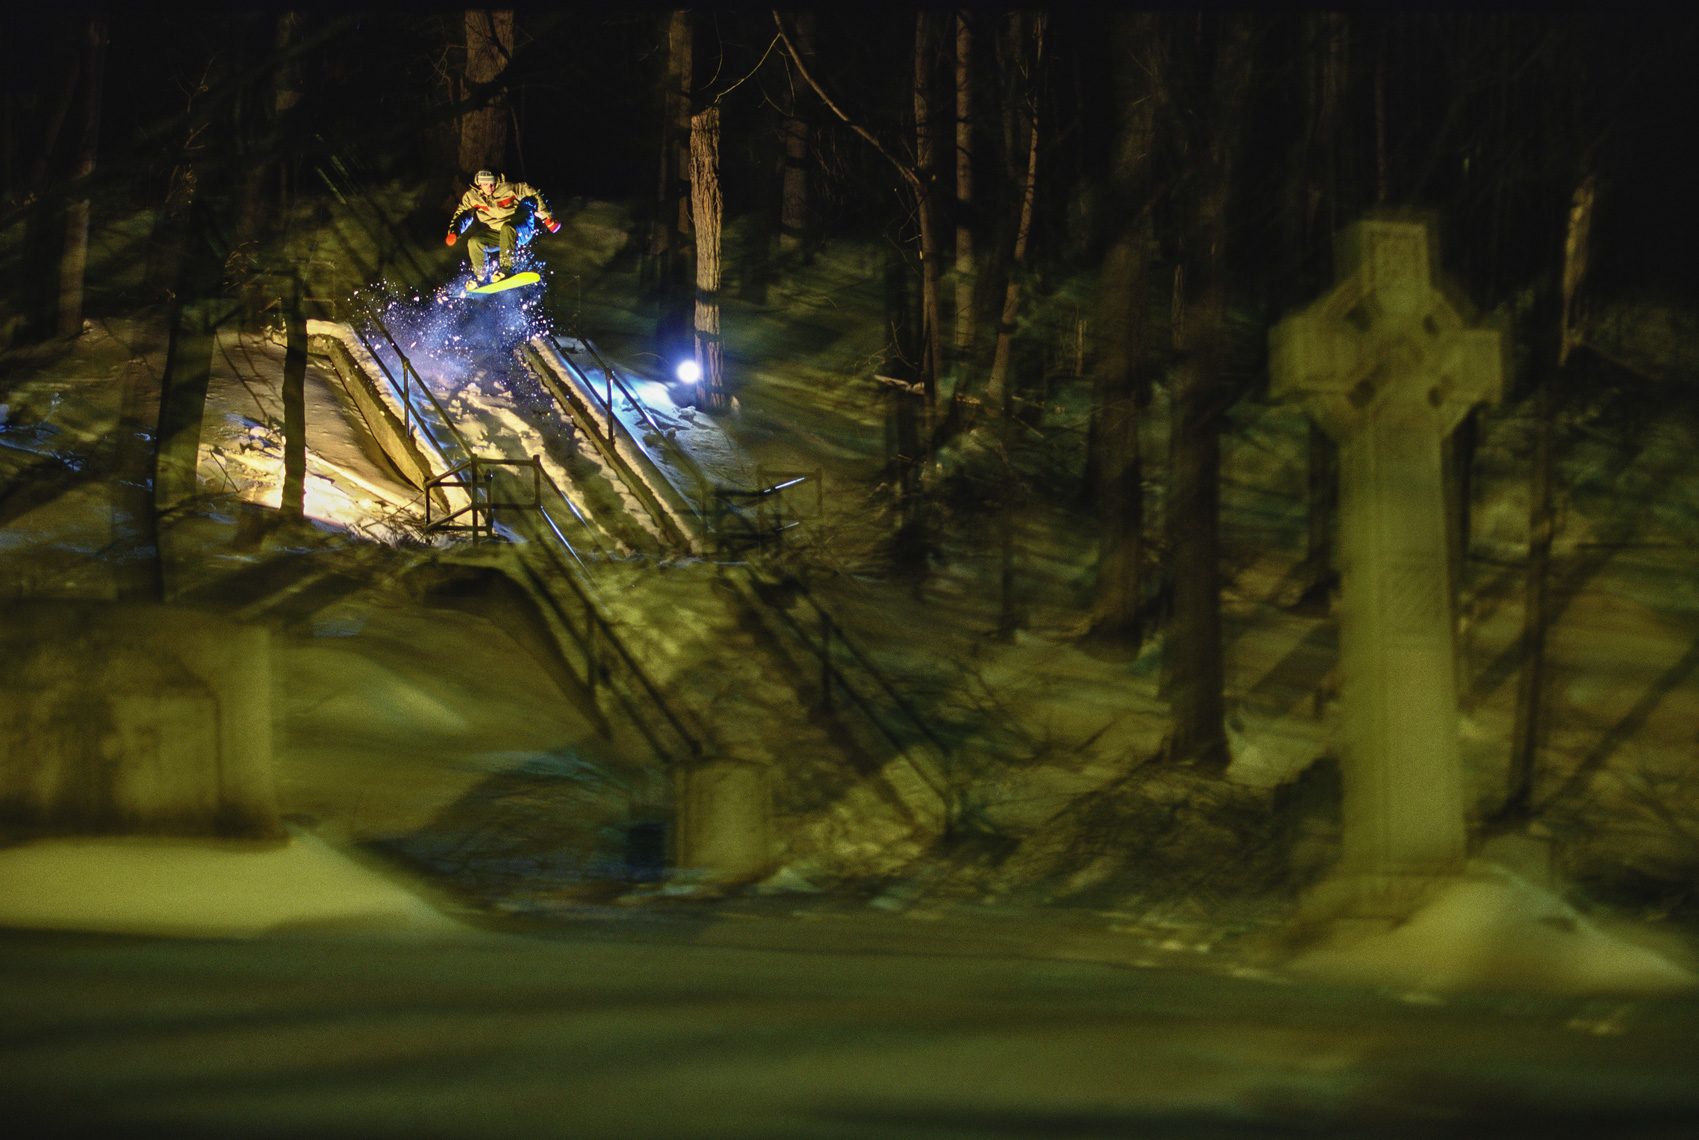 HerbGeorge_SnowboarderMagazine_BurlingtonVTGraveyard_Action_Retouched_Web